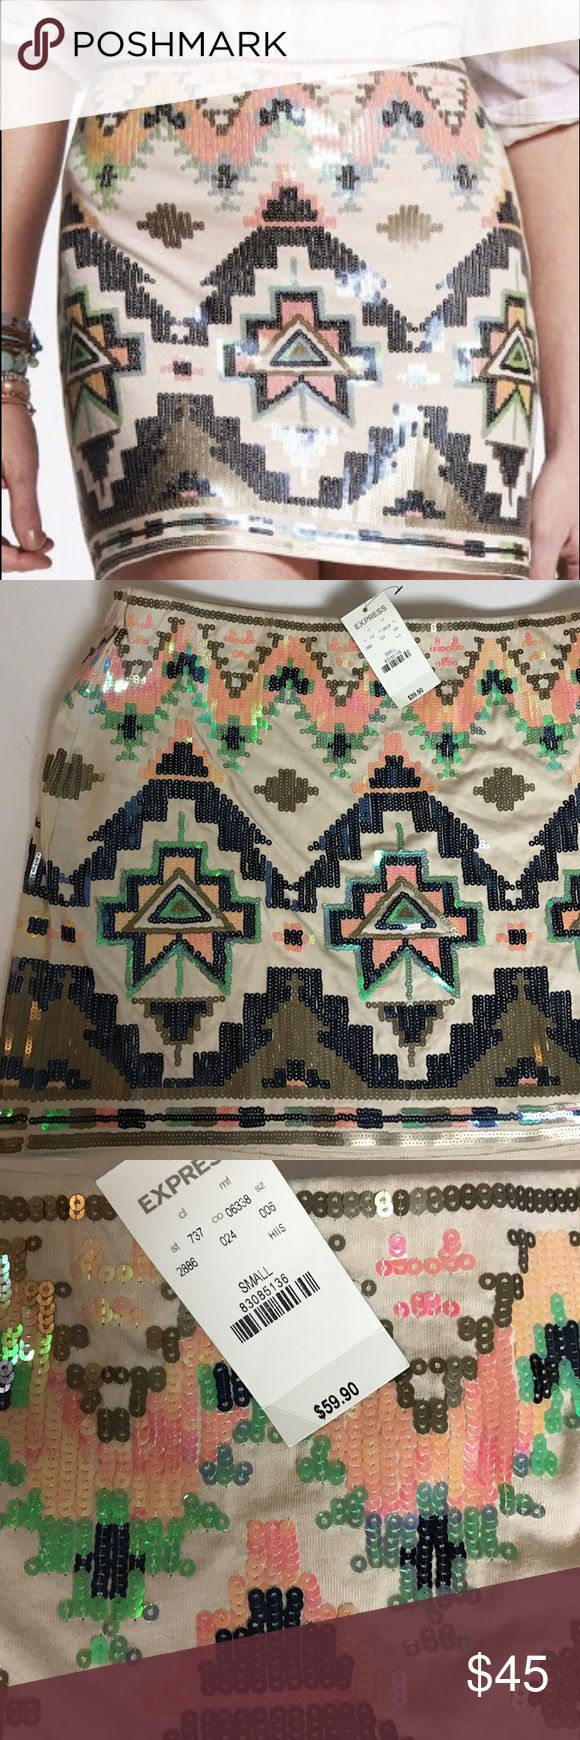 NWT! Express Aztec Sequin Skirt NWT! Beautiful Aztec sequin skirt. Super cute 😍 Express Skirts Mini